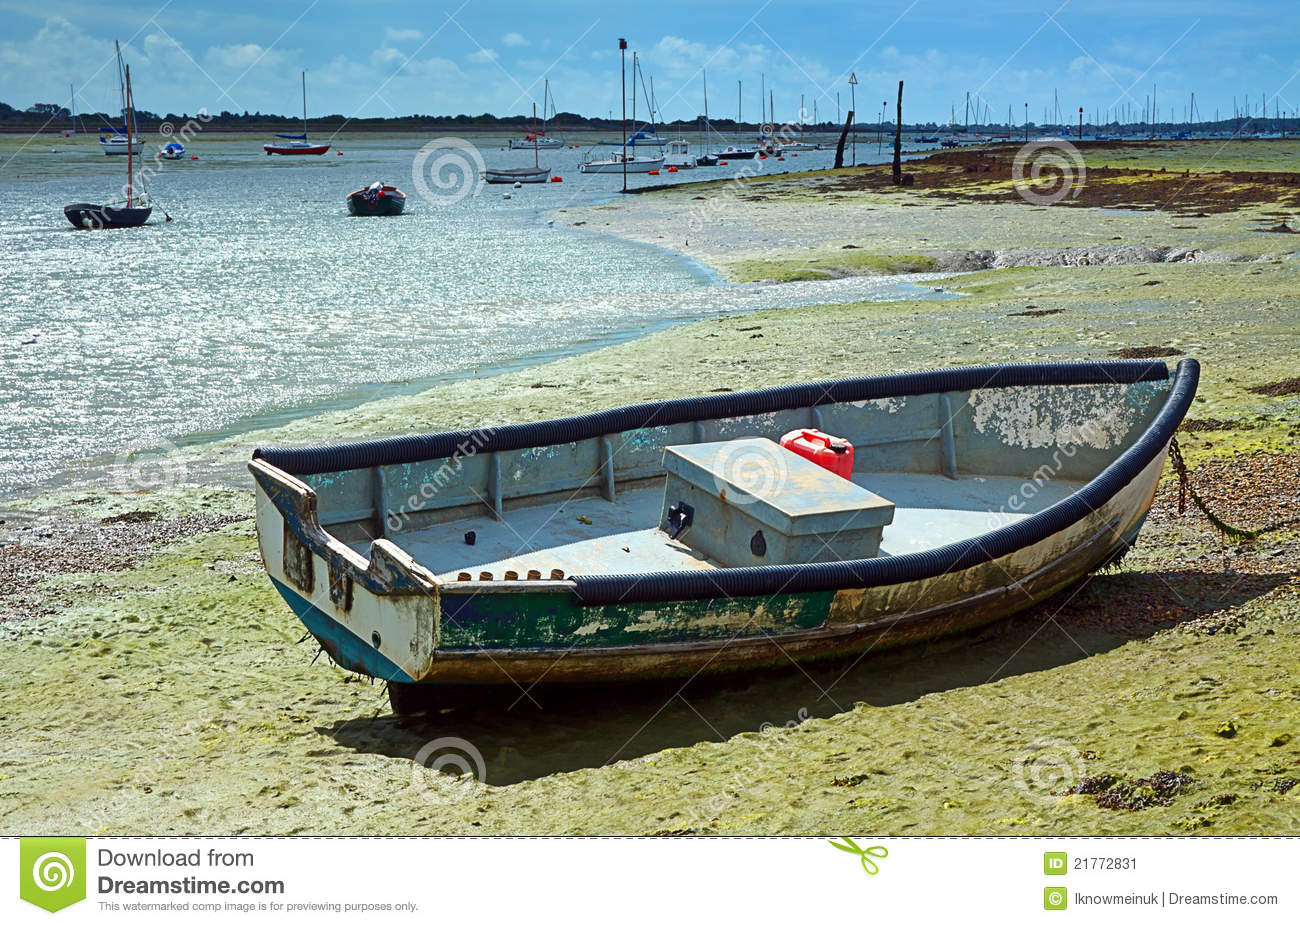 Small Boat At Low Tide Stock Image - Image: 21772831